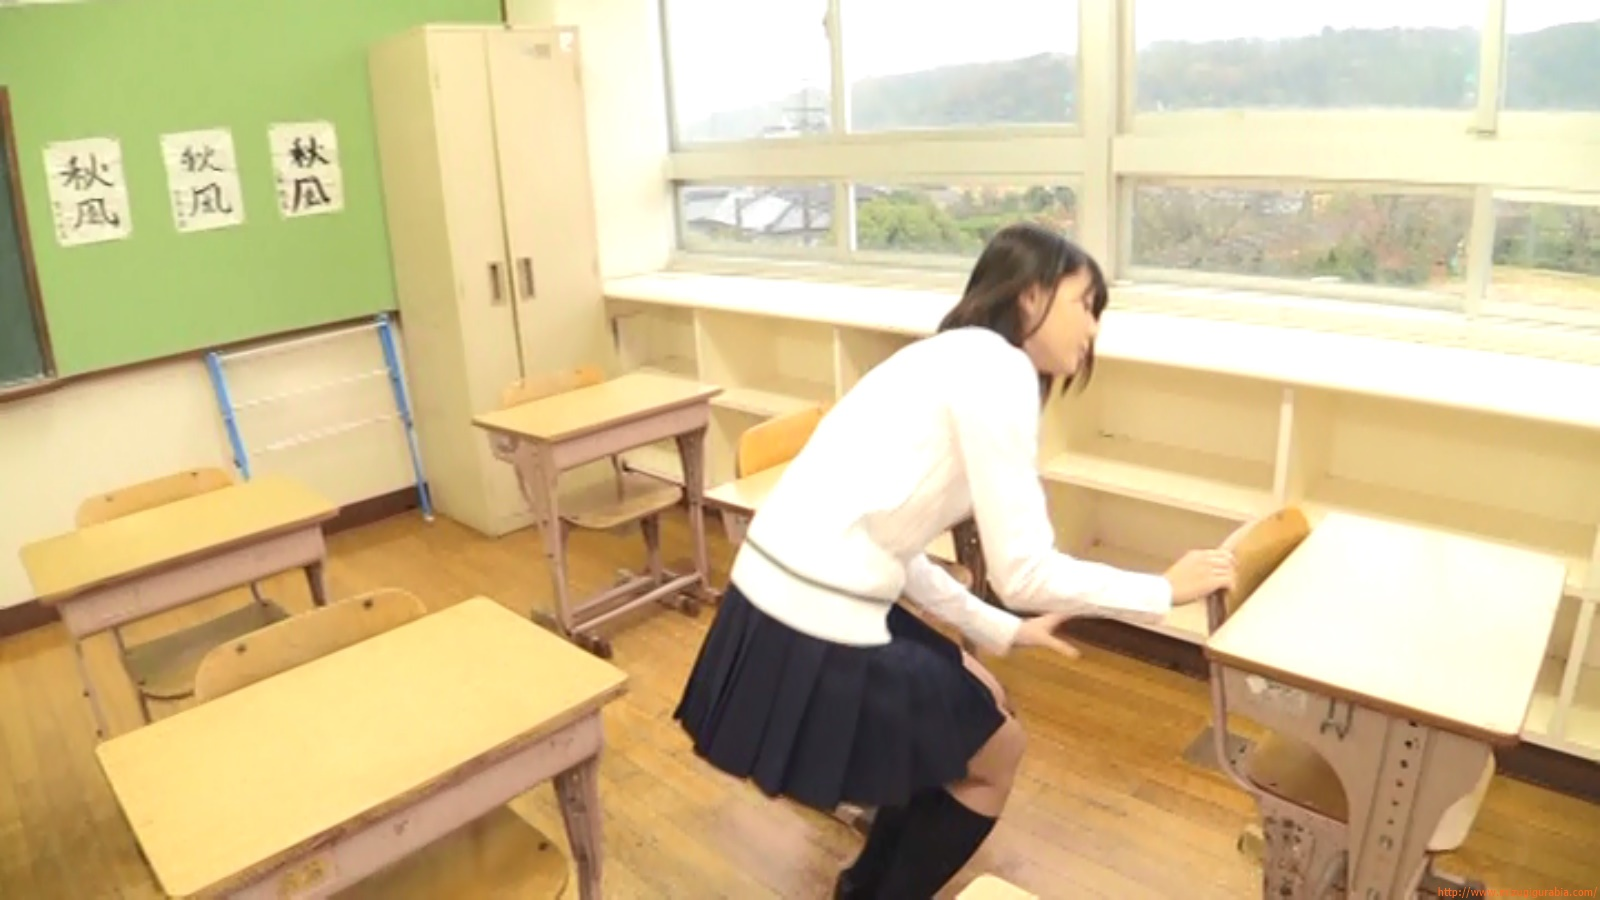 Two-person classroom042